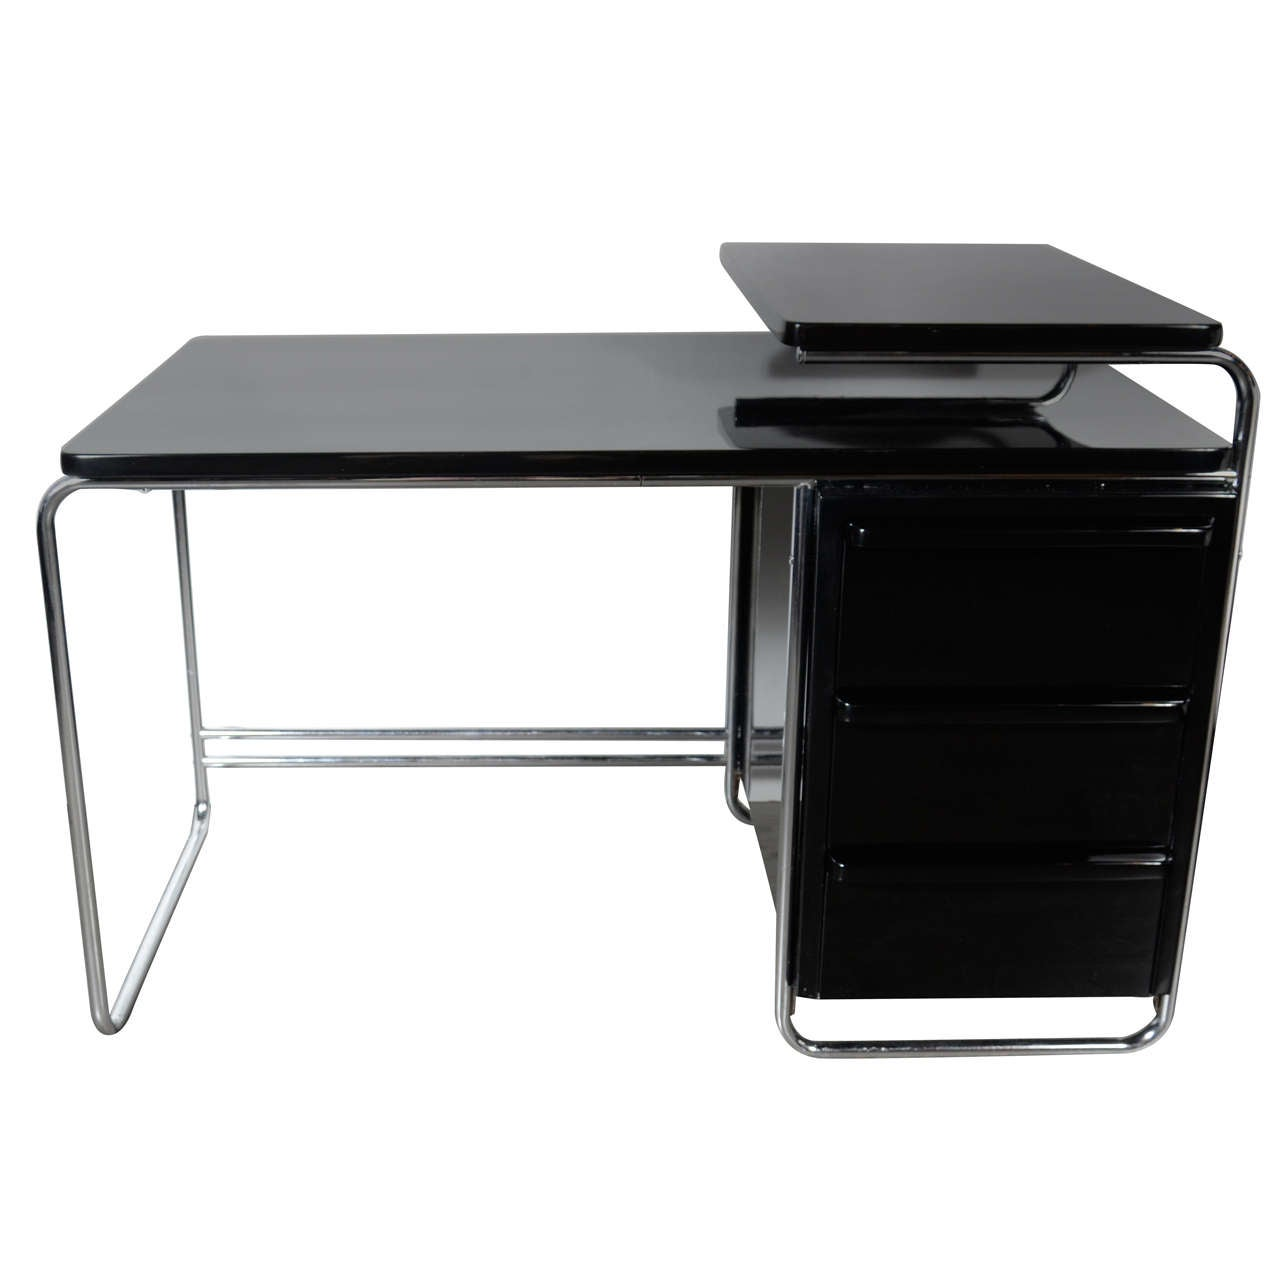 art deco bauhaus style desk by wolfgang hoffmann in black lacquer and chrome black lacquer furniture paint